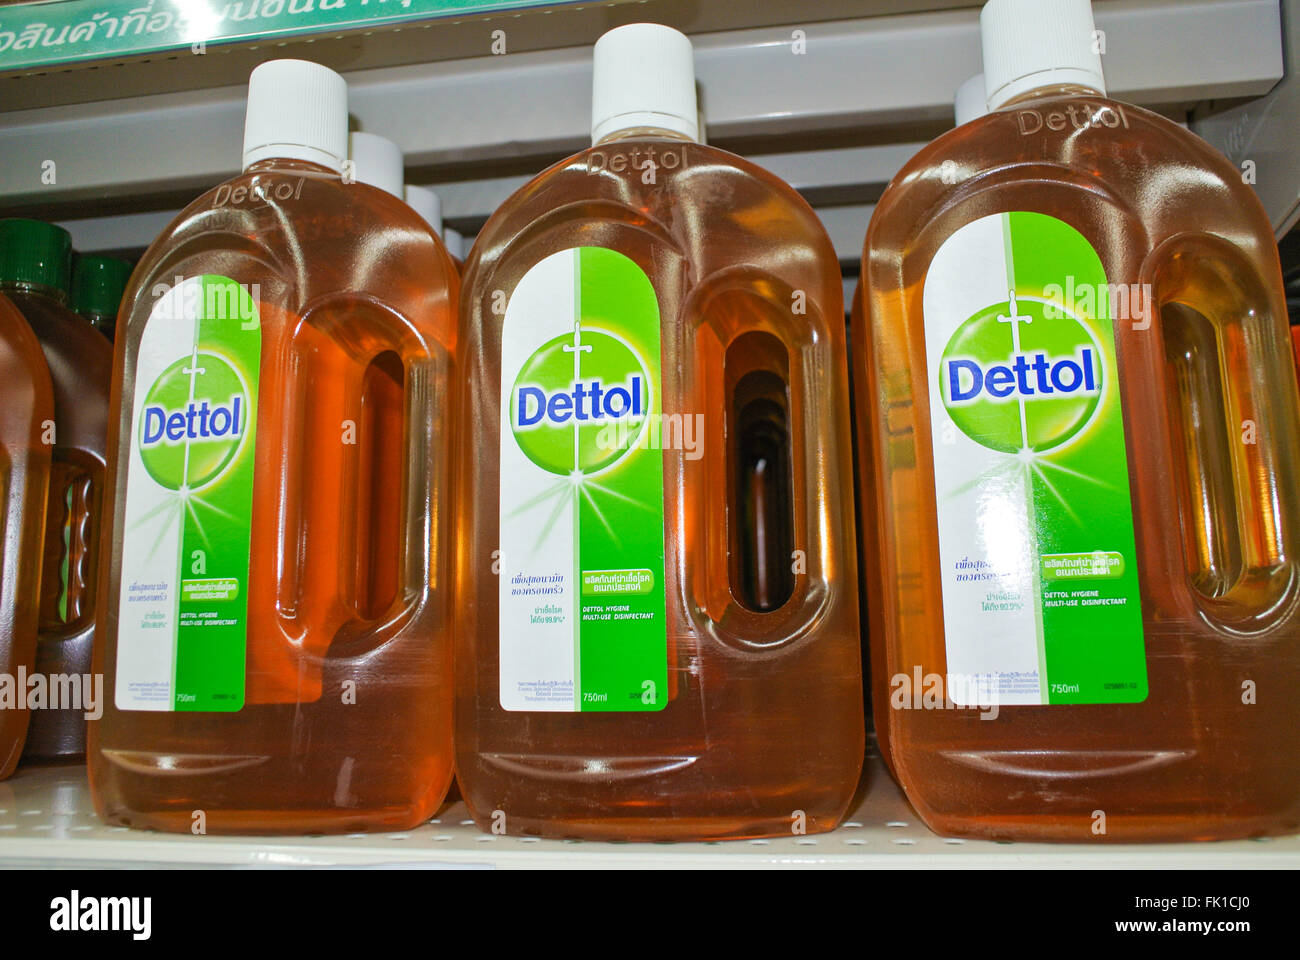 Dettol disinfectant bottles - Stock Image